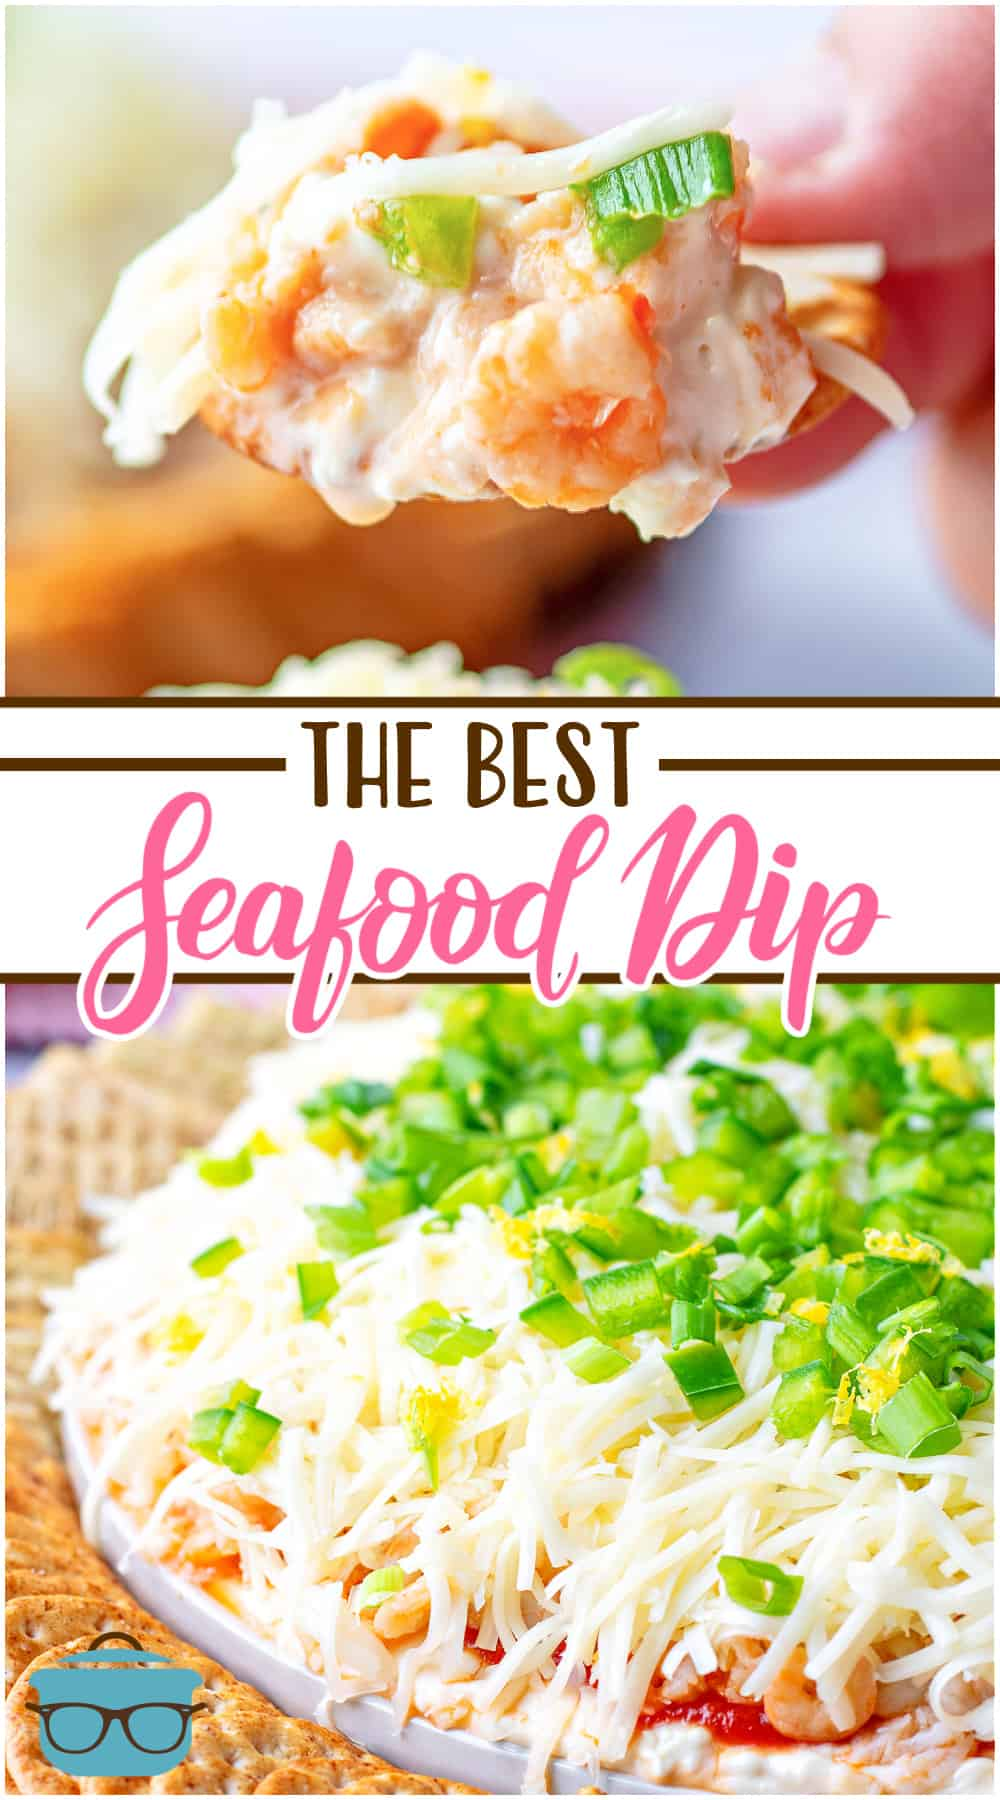 The Best Crab Dip appetizer recipe is filled with crab meat, shrimp, seasoned cream cheese, cocktail sauce, green onions and cheese!